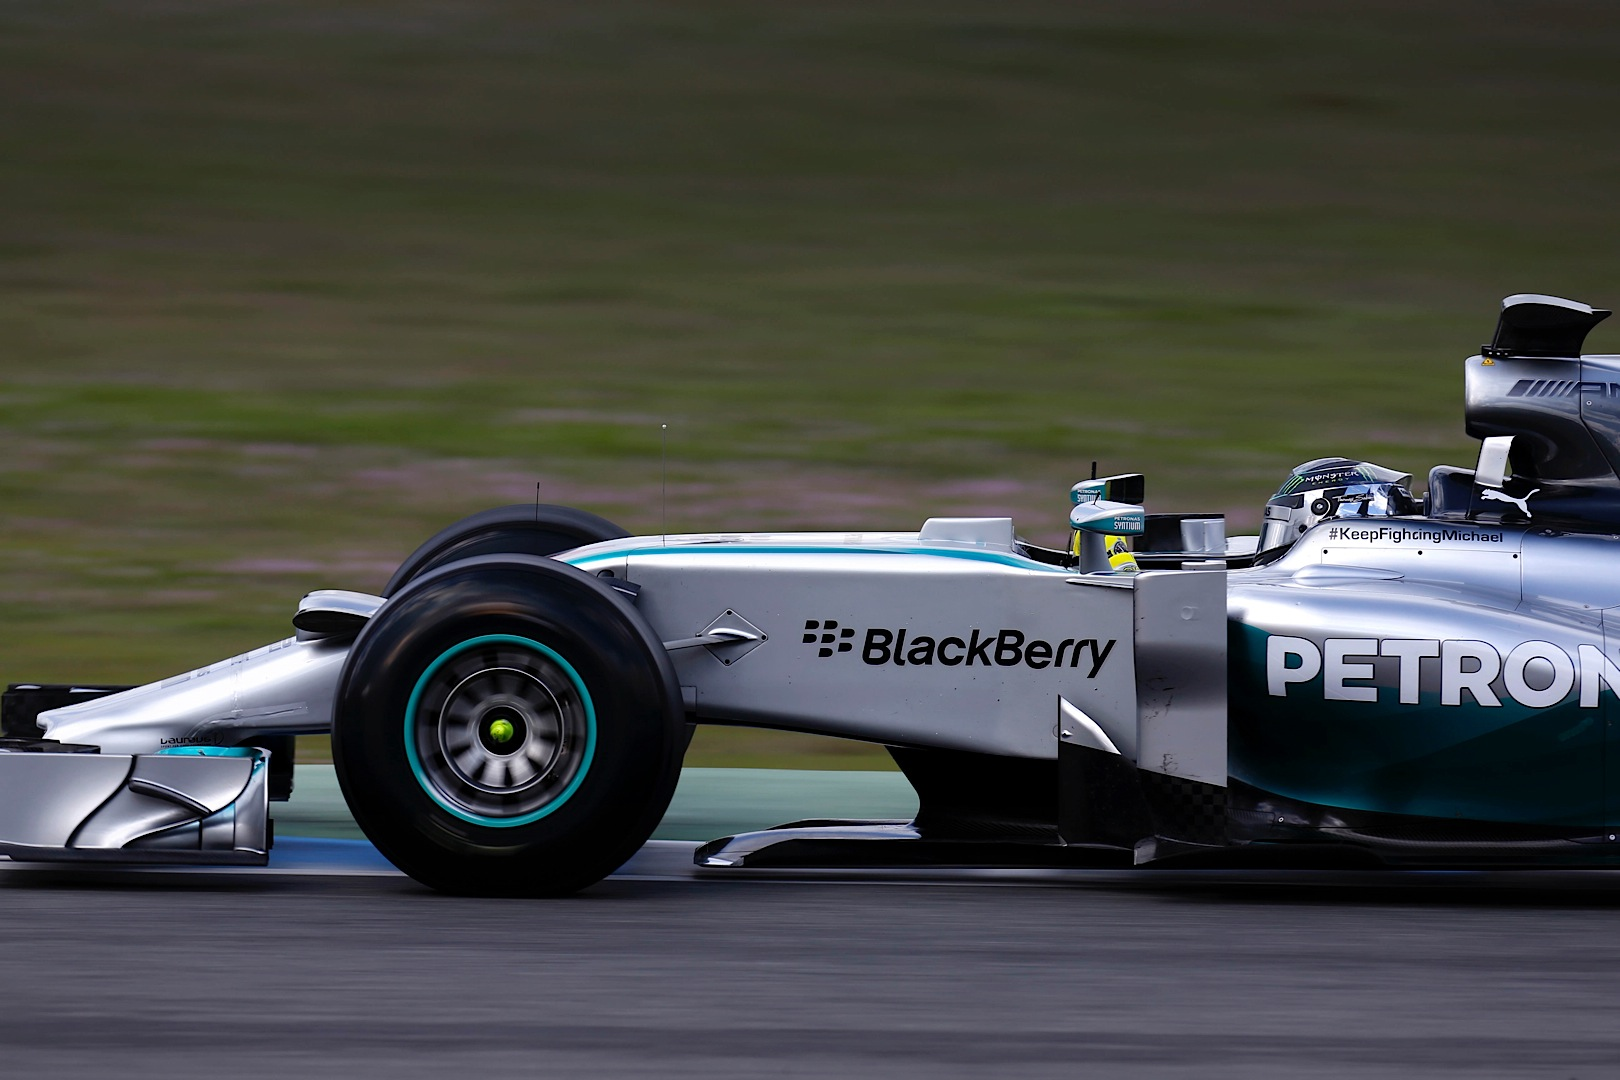 2014 Mercedes Amg Petronas F1 W05 Mechanical 2 1280x800 | Apps ...